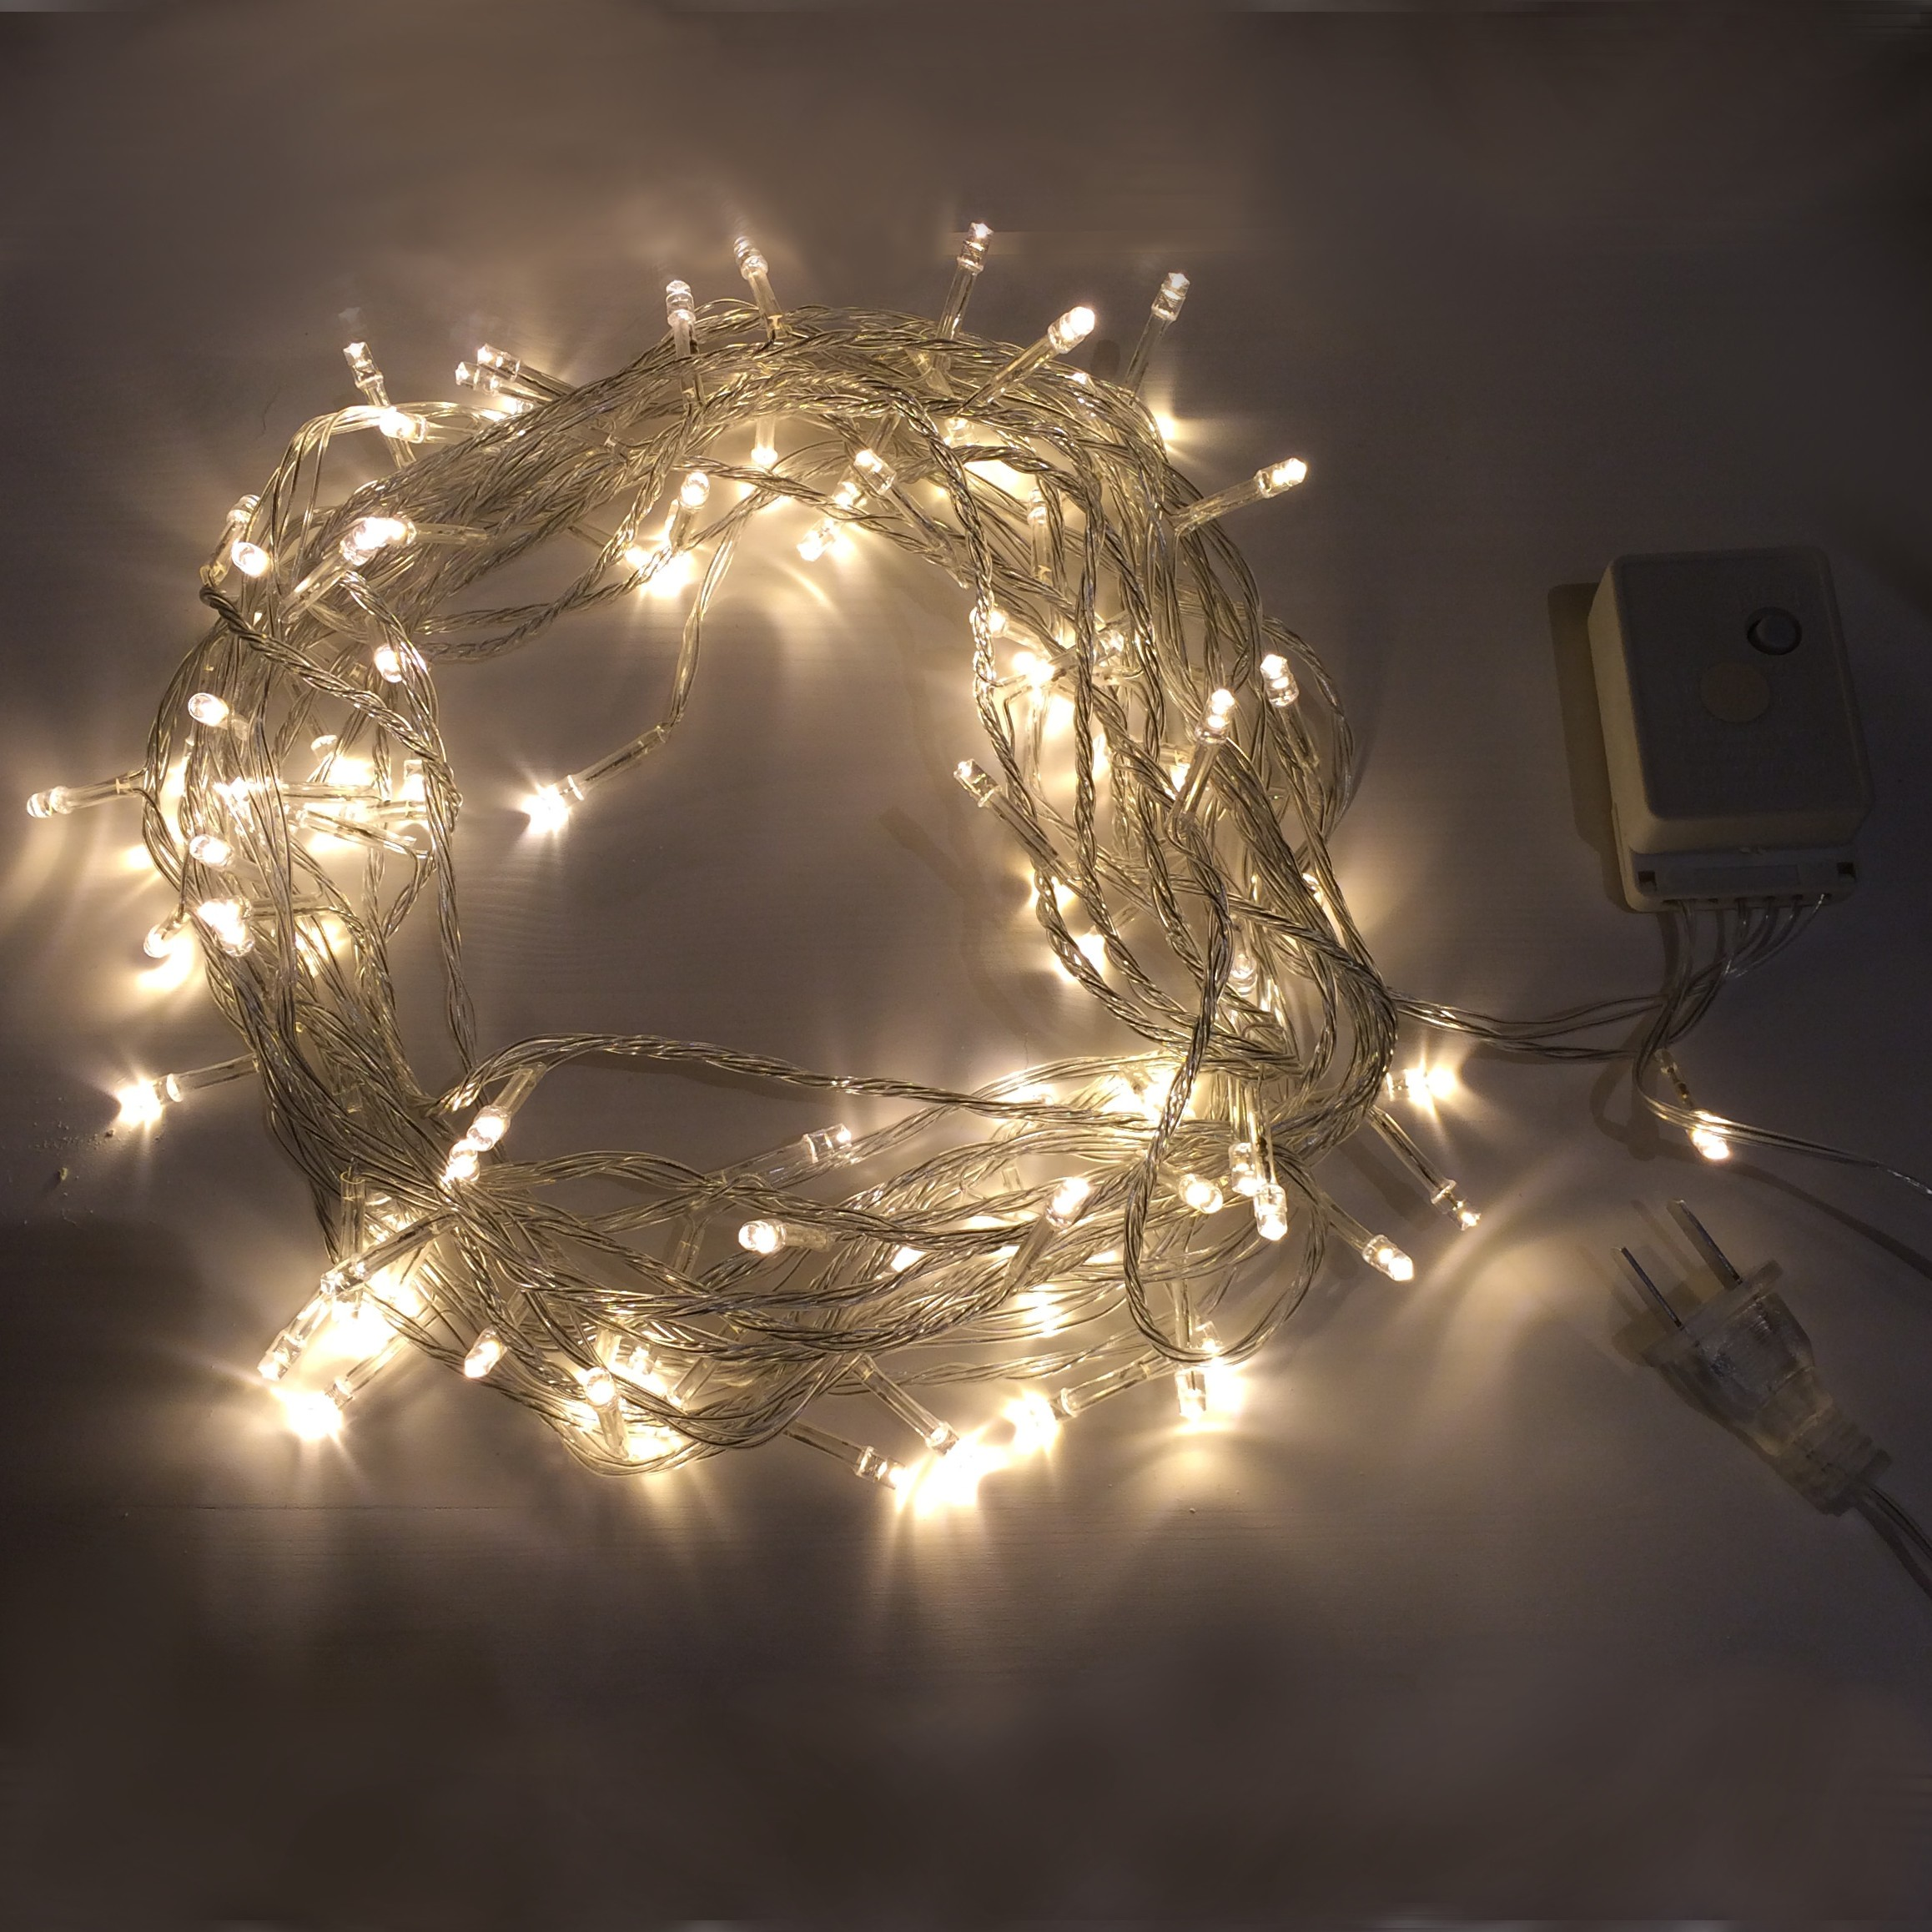 799 warm white 10m 8 mode led string lights fairy lights 799 warm white 10m 8 mode led string lights fairy lights christmas lights tinkersphere mozeypictures Choice Image